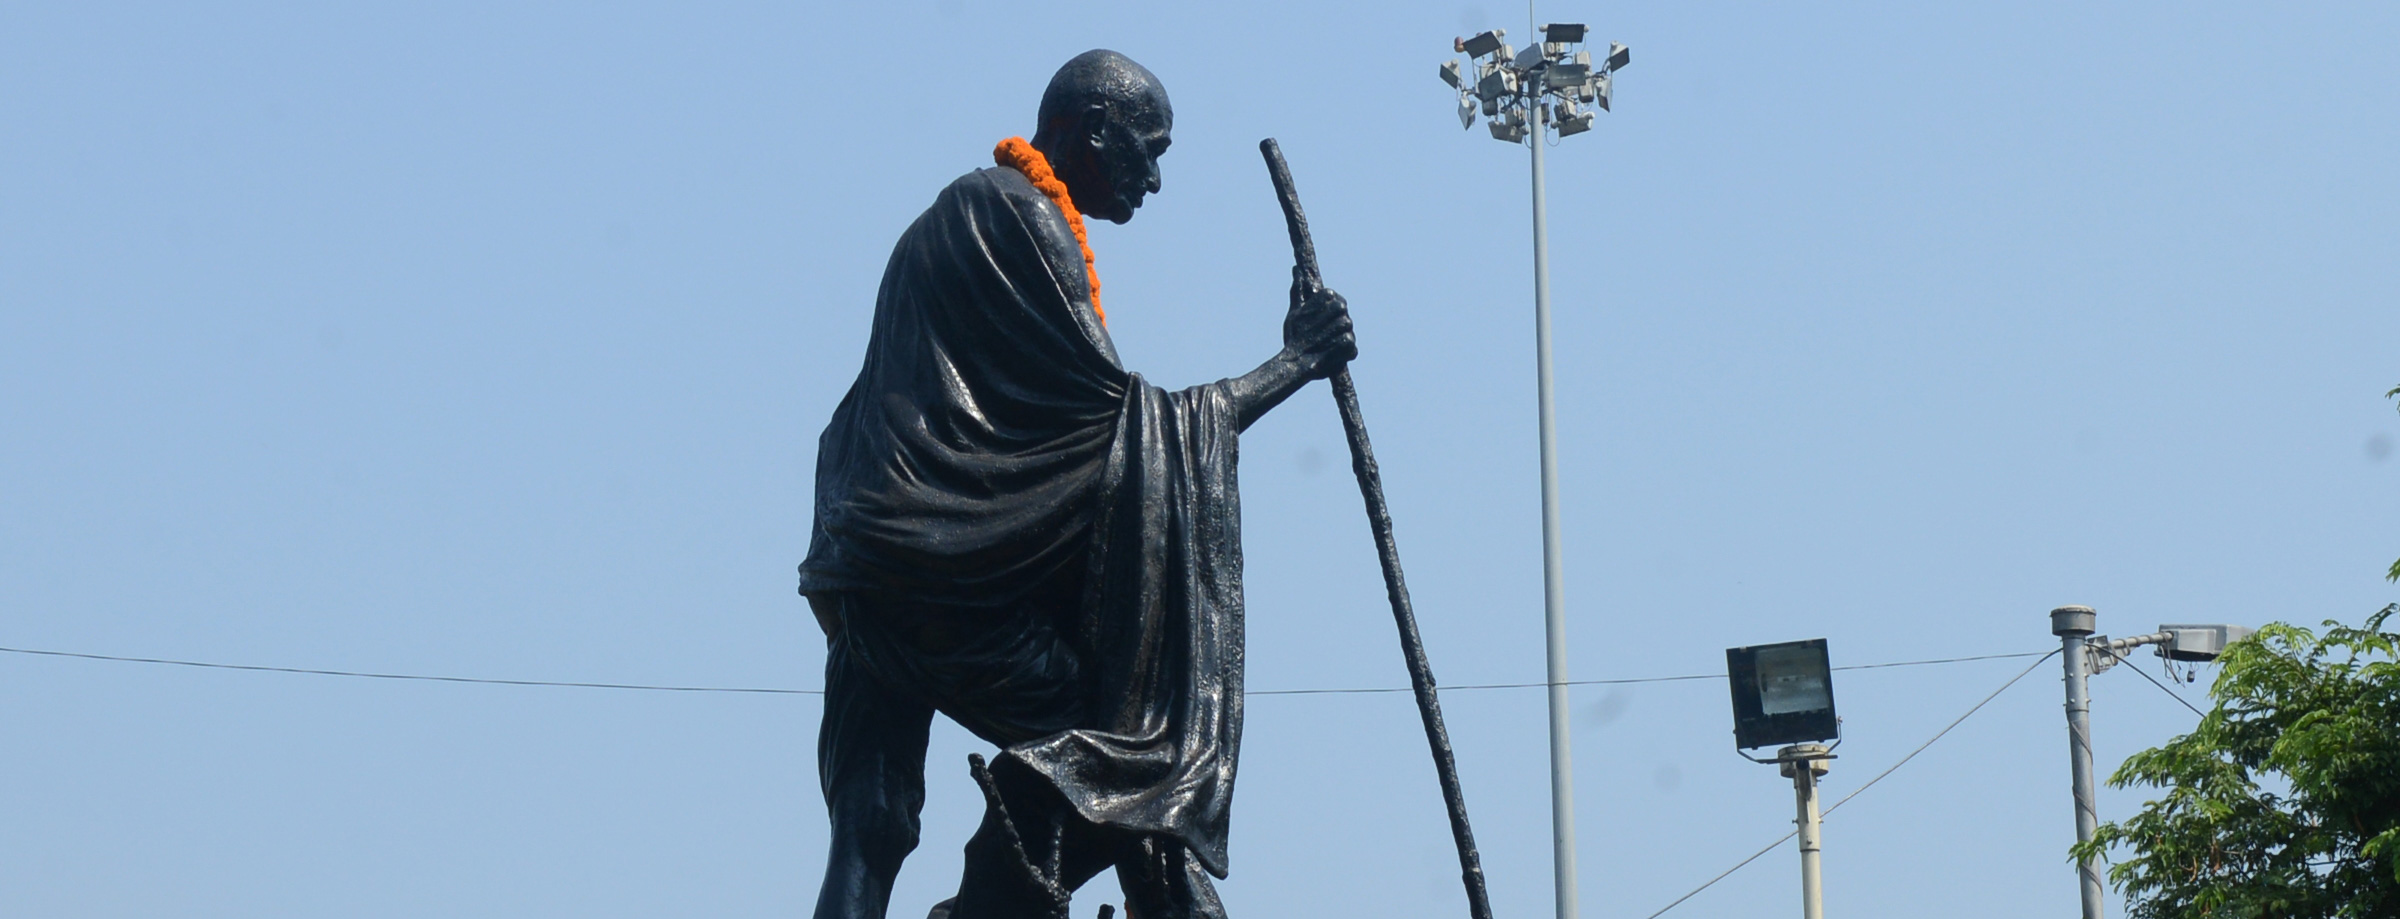 By the people: Gandhi's pan-Indian life and legacy